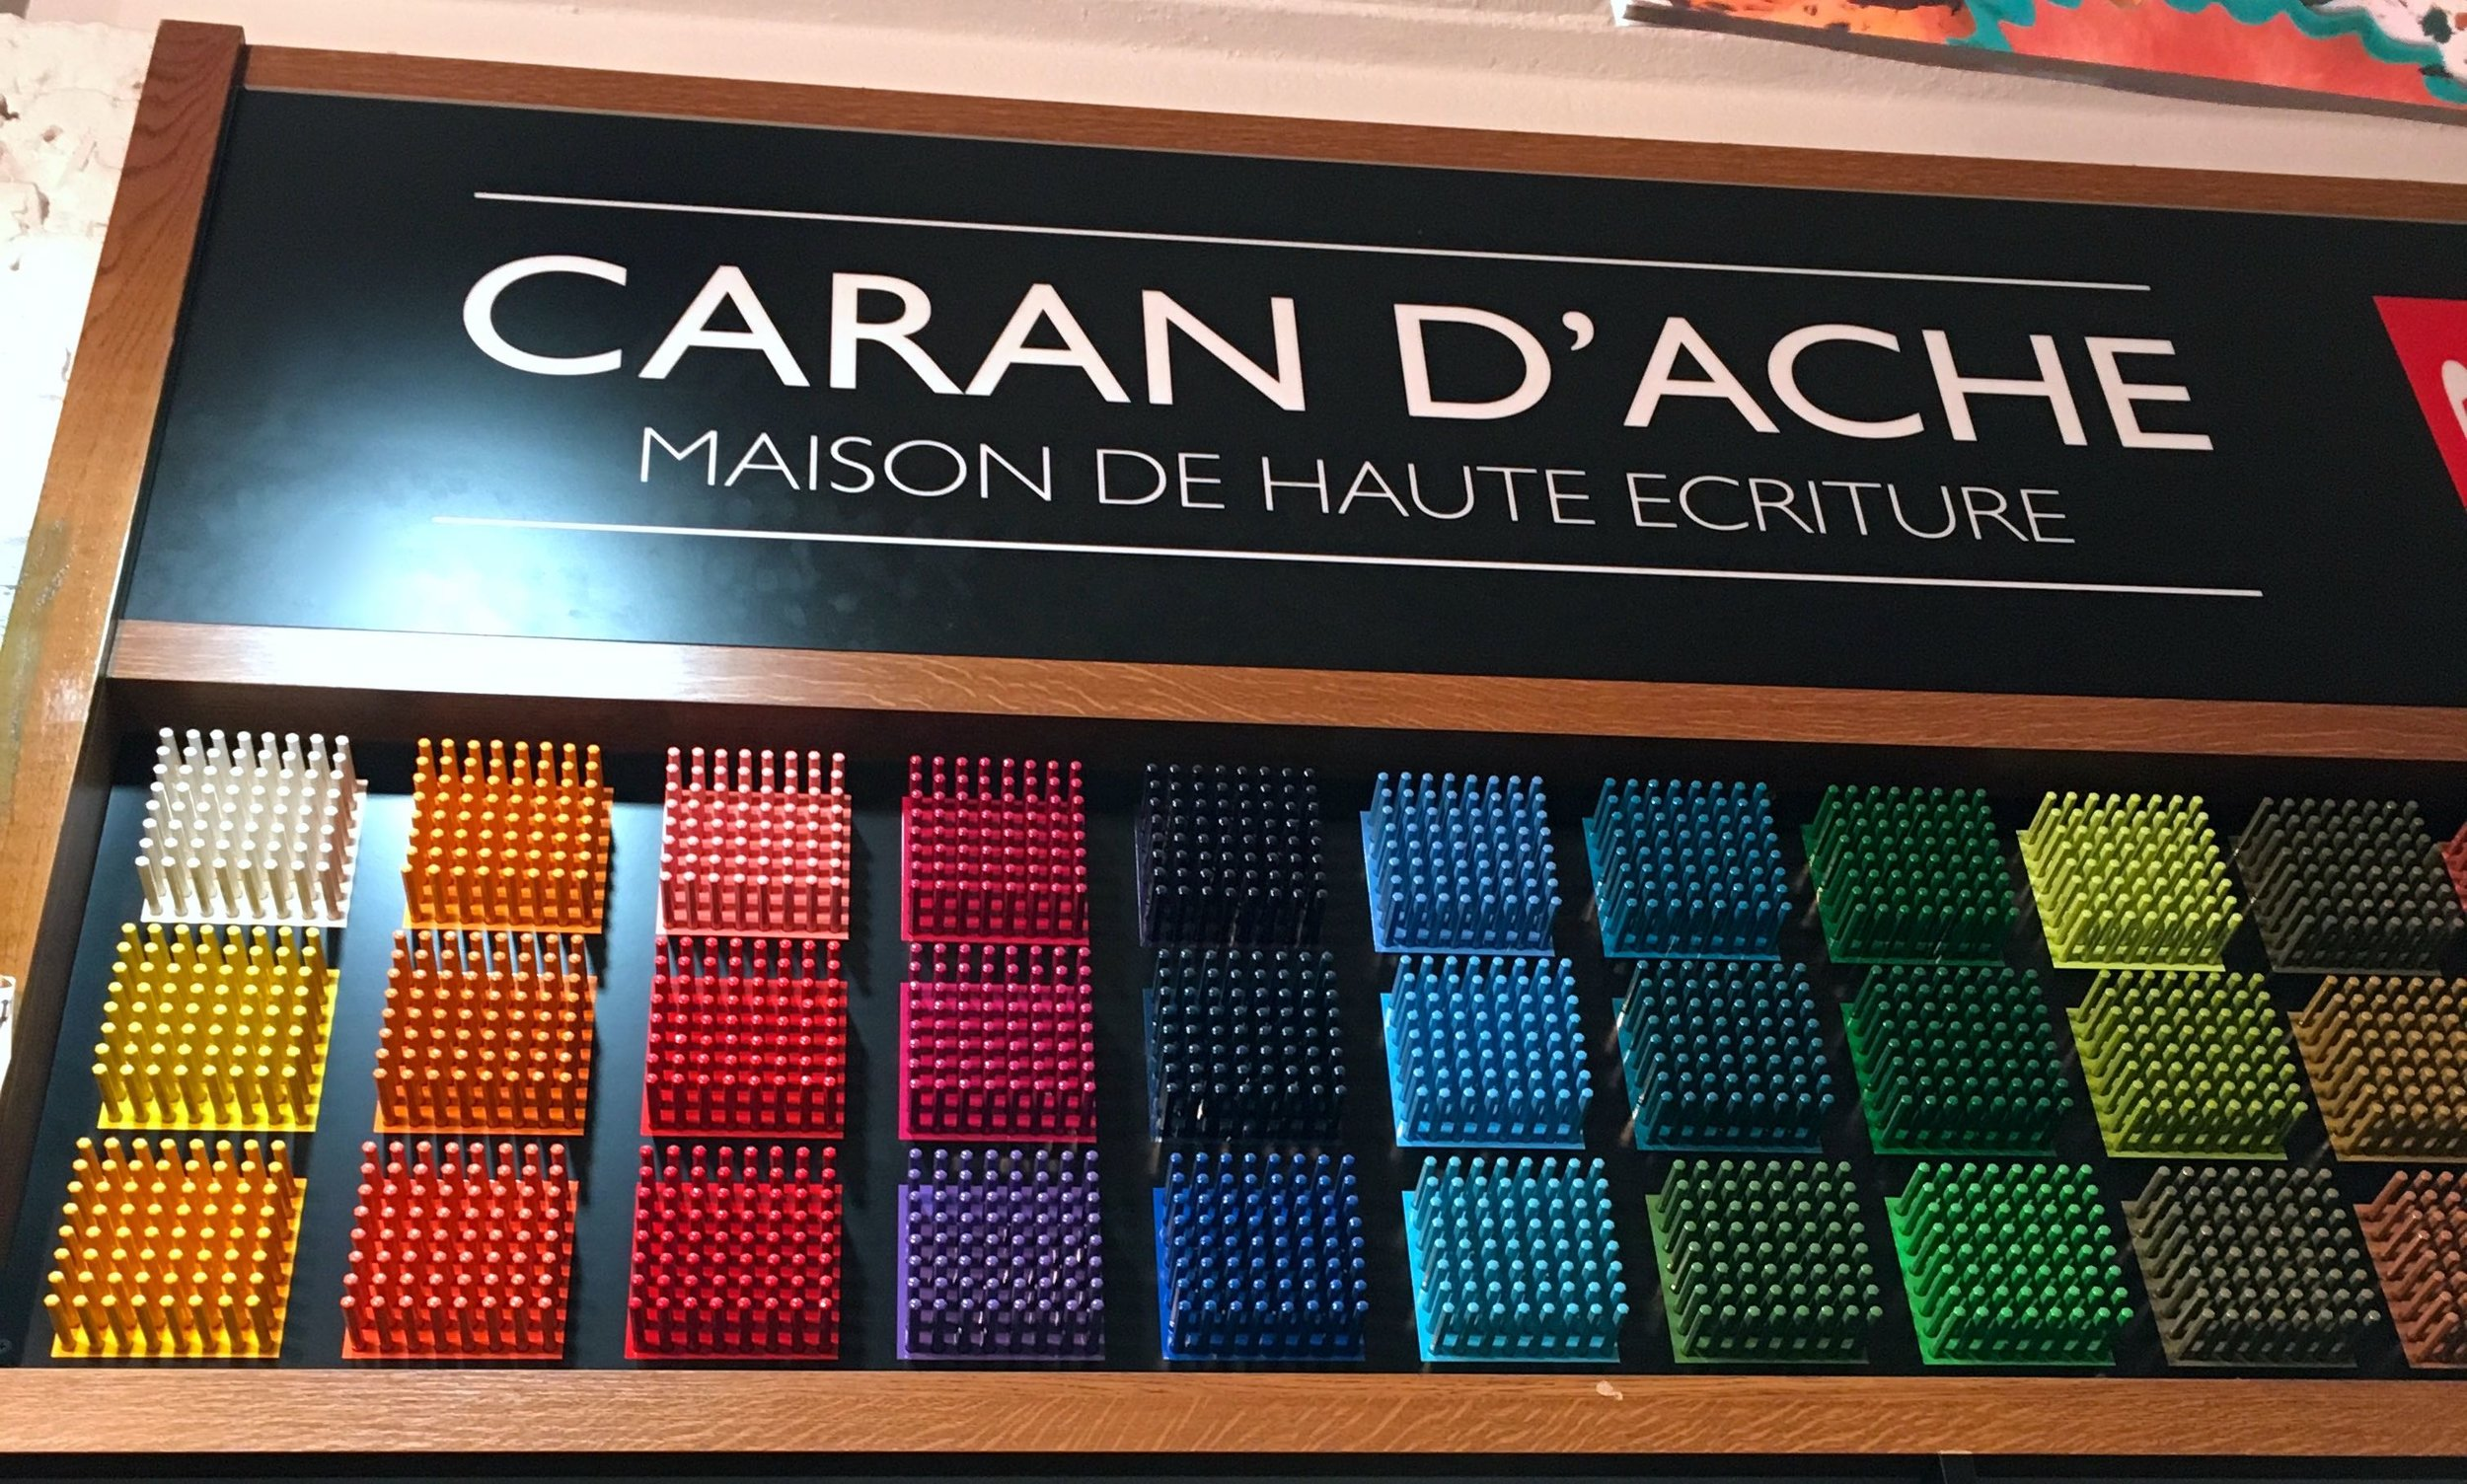 Caran d'Ache - I made a beeline for these when I arrived at the London Graphic Centre